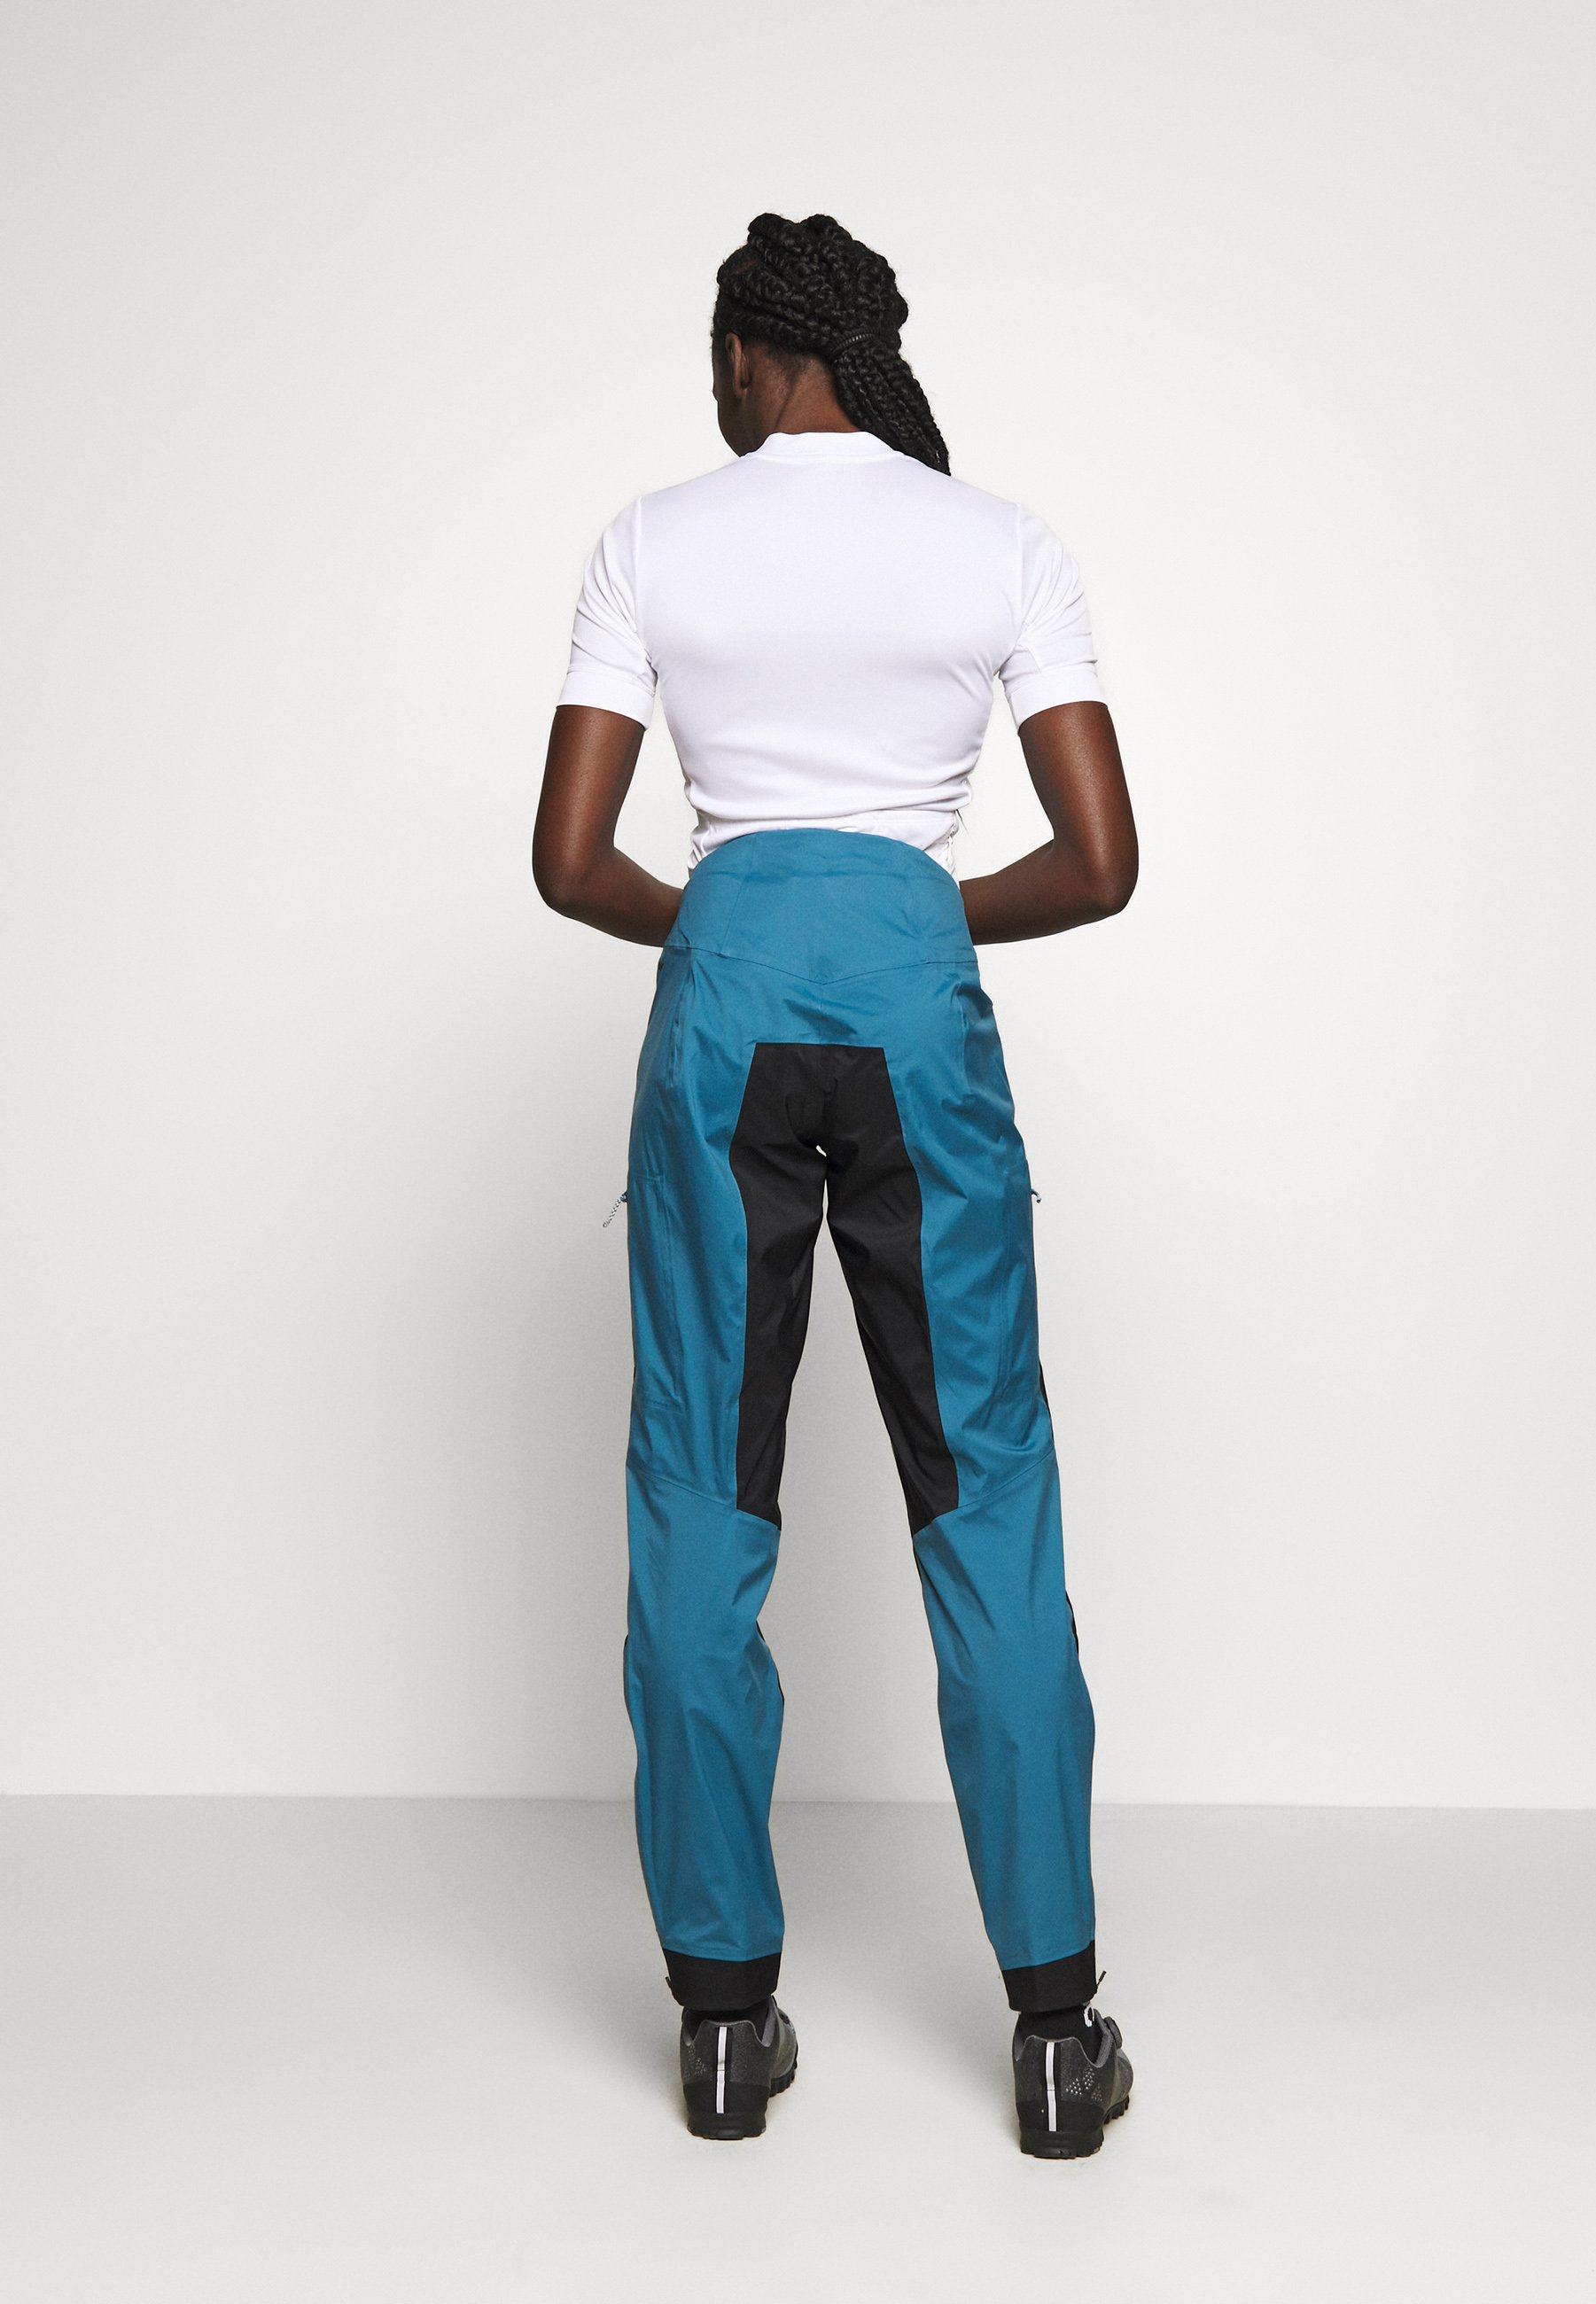 Fast Delivery Women's Clothing Patagonia DIRT ROAMER STORM PANTS Outdoor trousers steller blue uTT81aHJ1